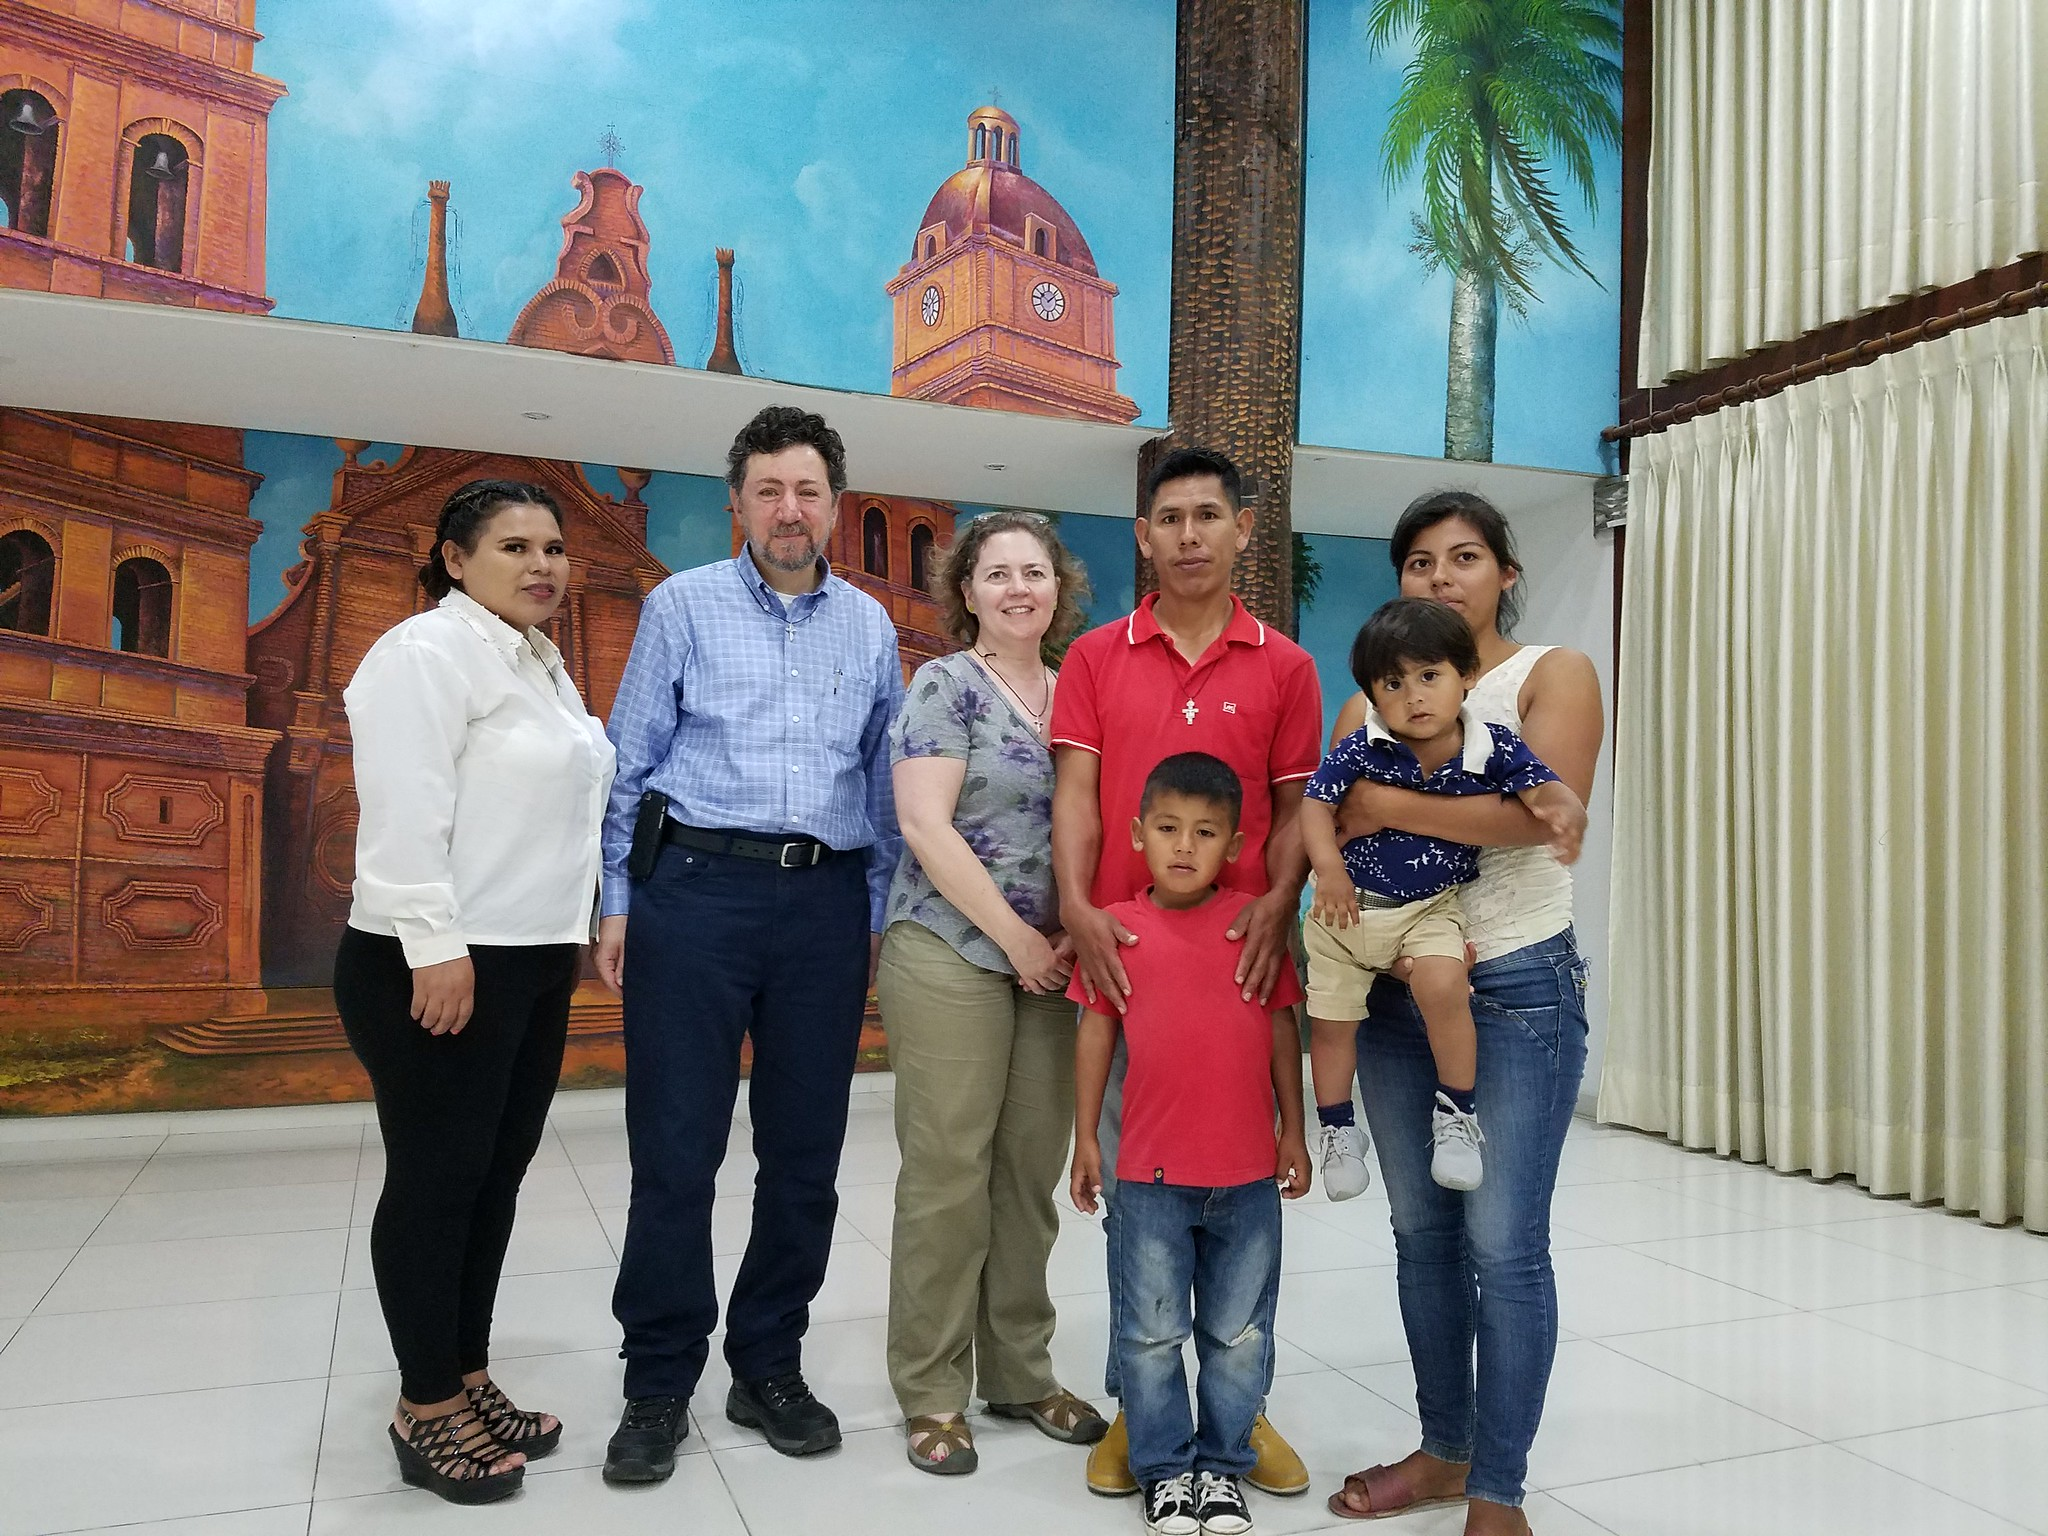 2019: Victor and his family visit with Dr. Khouzam and our mission team again in Santa Cruz